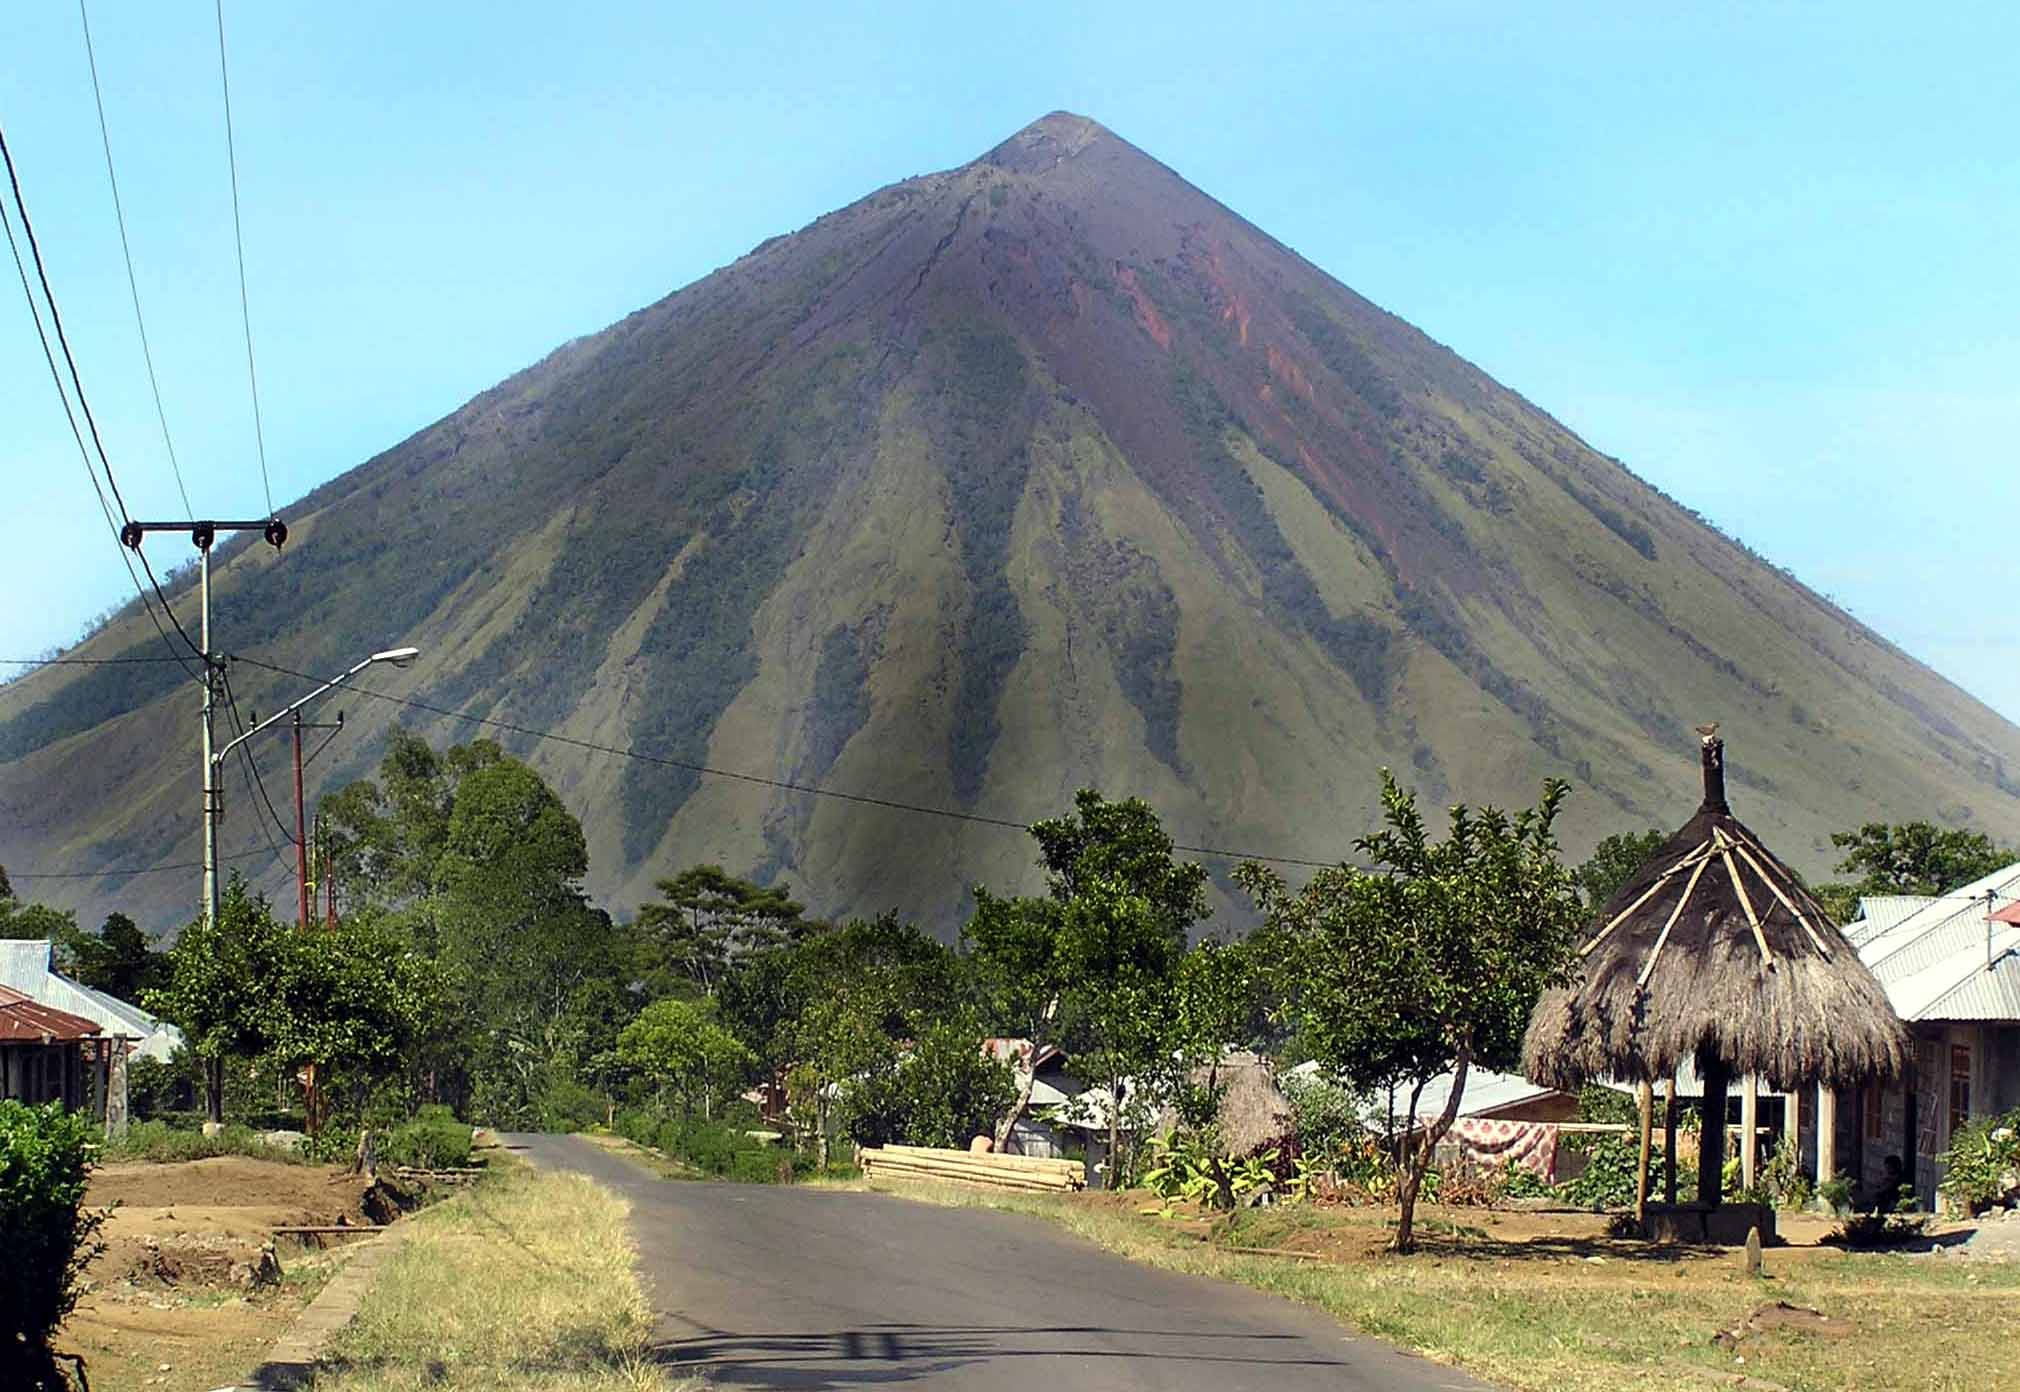 Bajawa Indonesia  City pictures : Mount Inerie with its beautiful, harmonic pyramid shape, is an eye ...